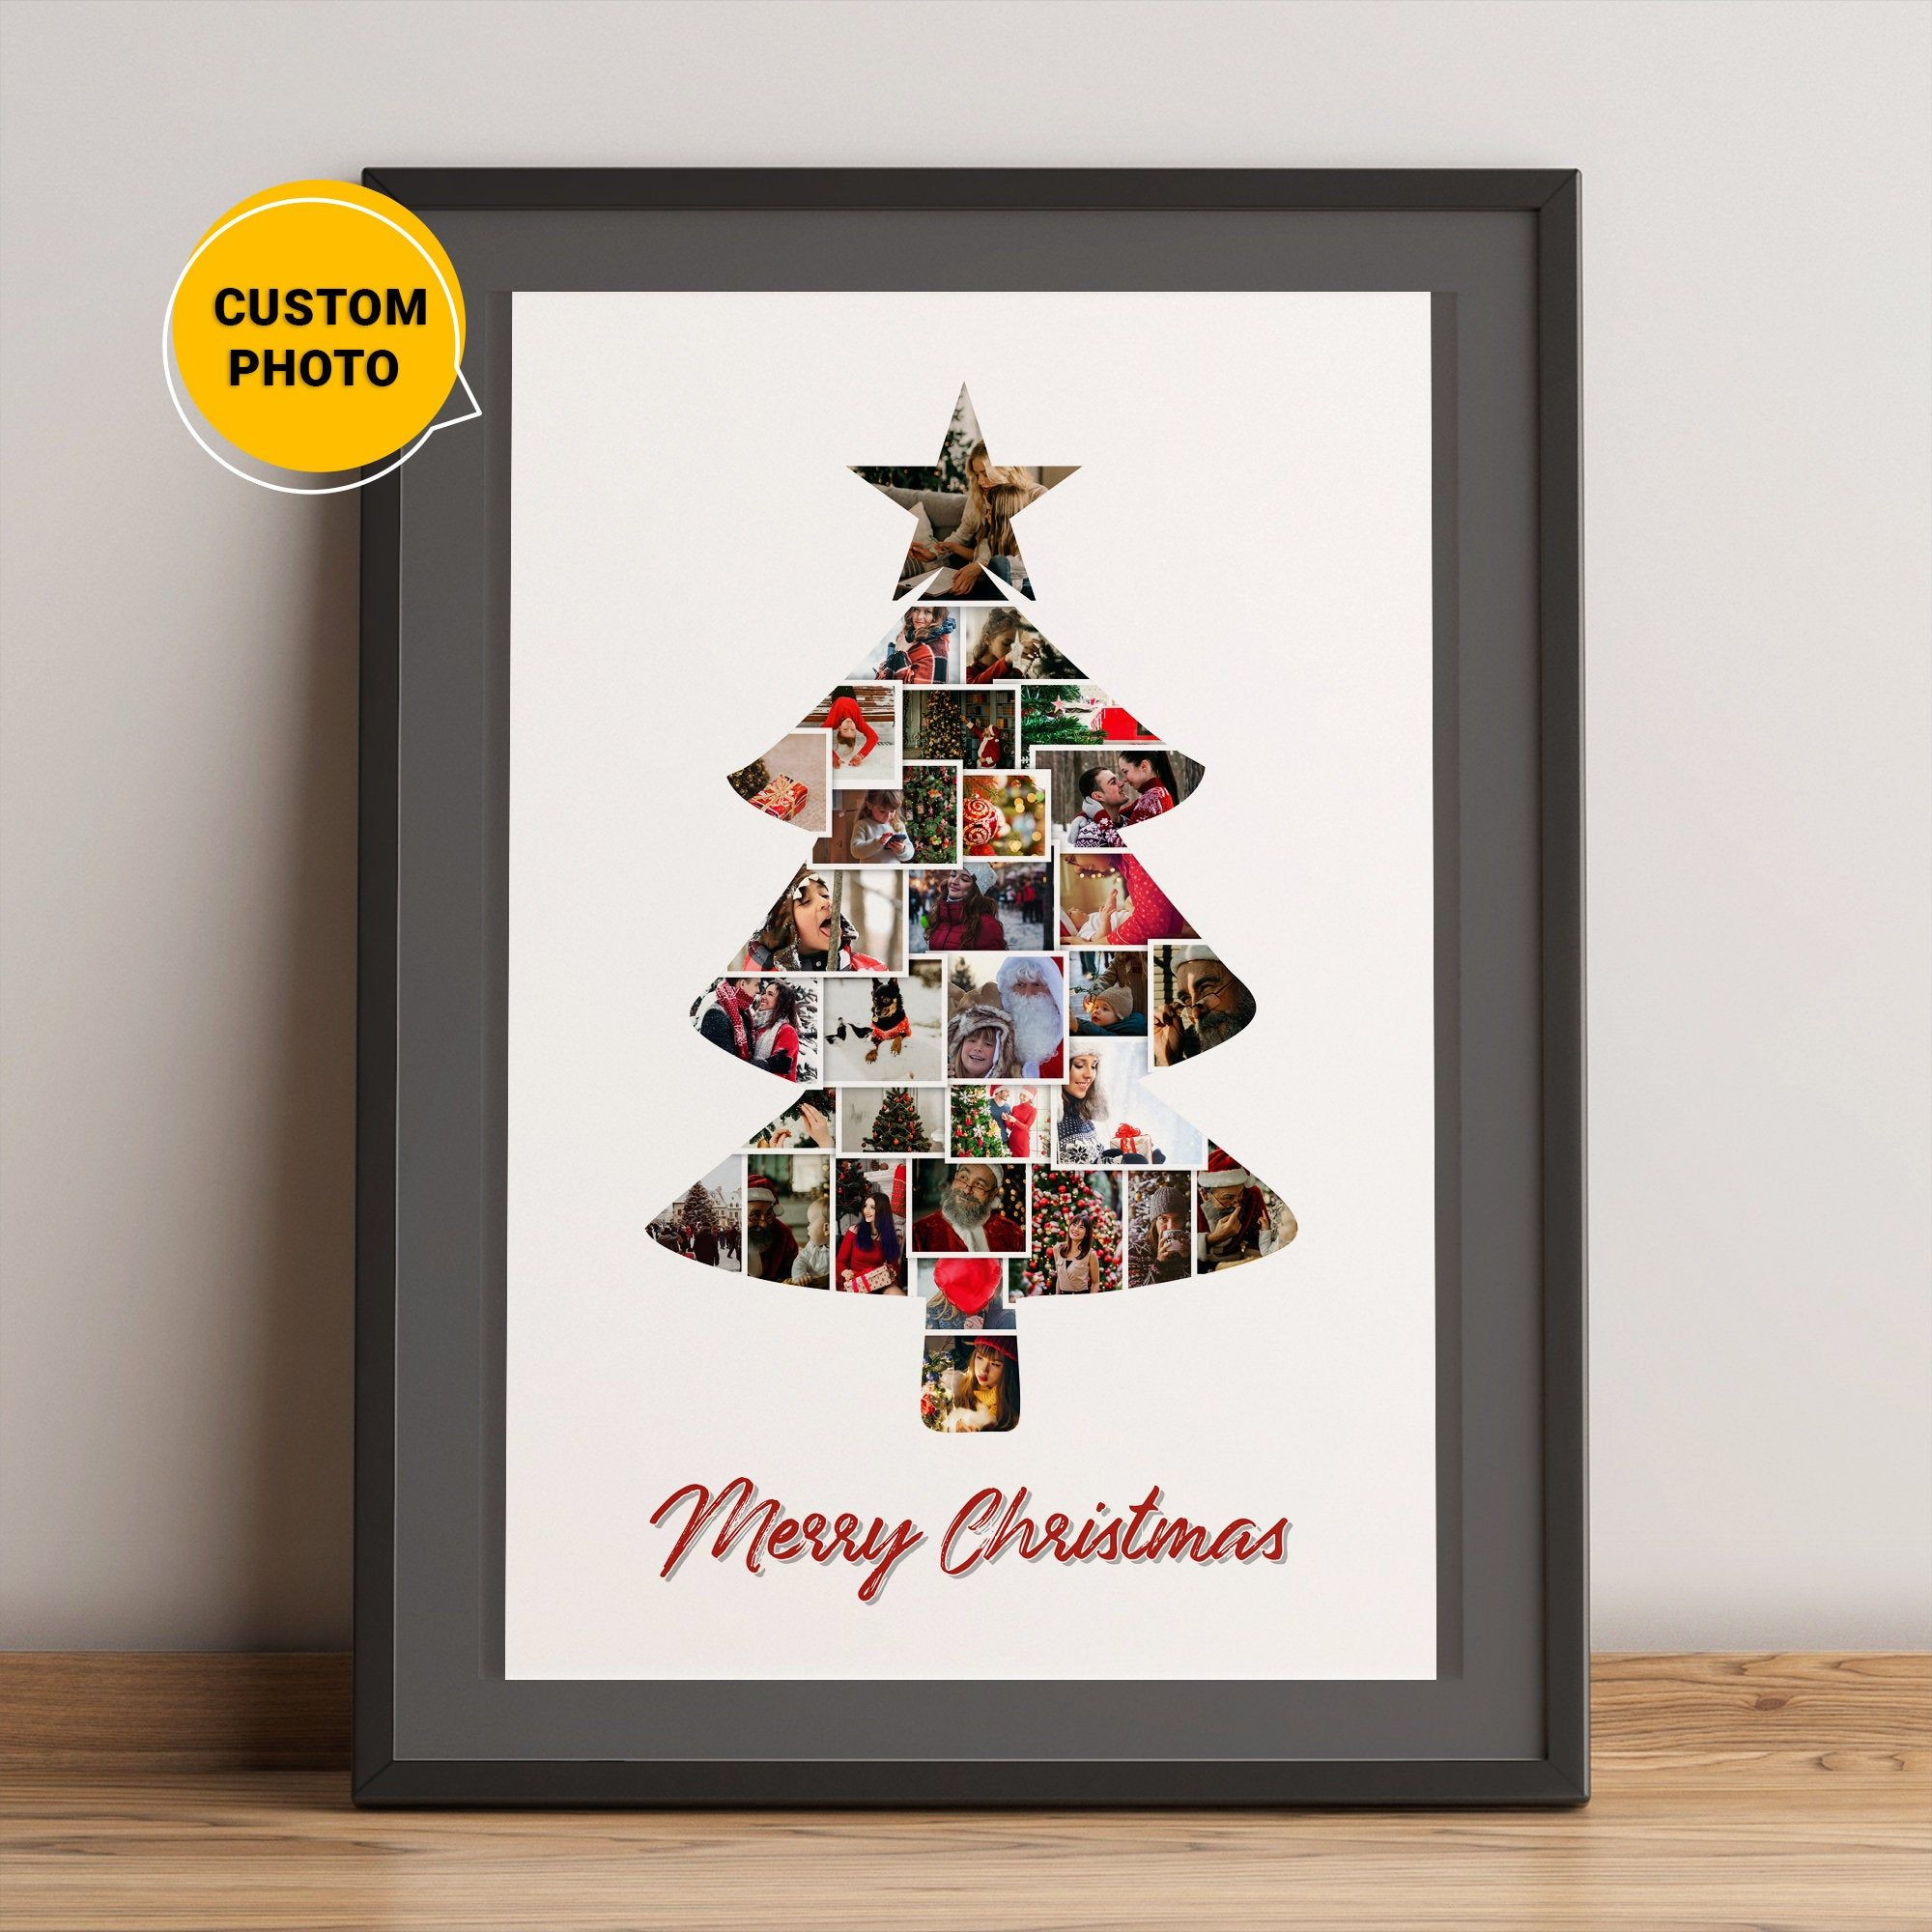 Christmas Tree Decoration Printchristmas Tree Poster Etsy Christmas Photo Album Christmas Tree Poster Personalized Christmas Gifts